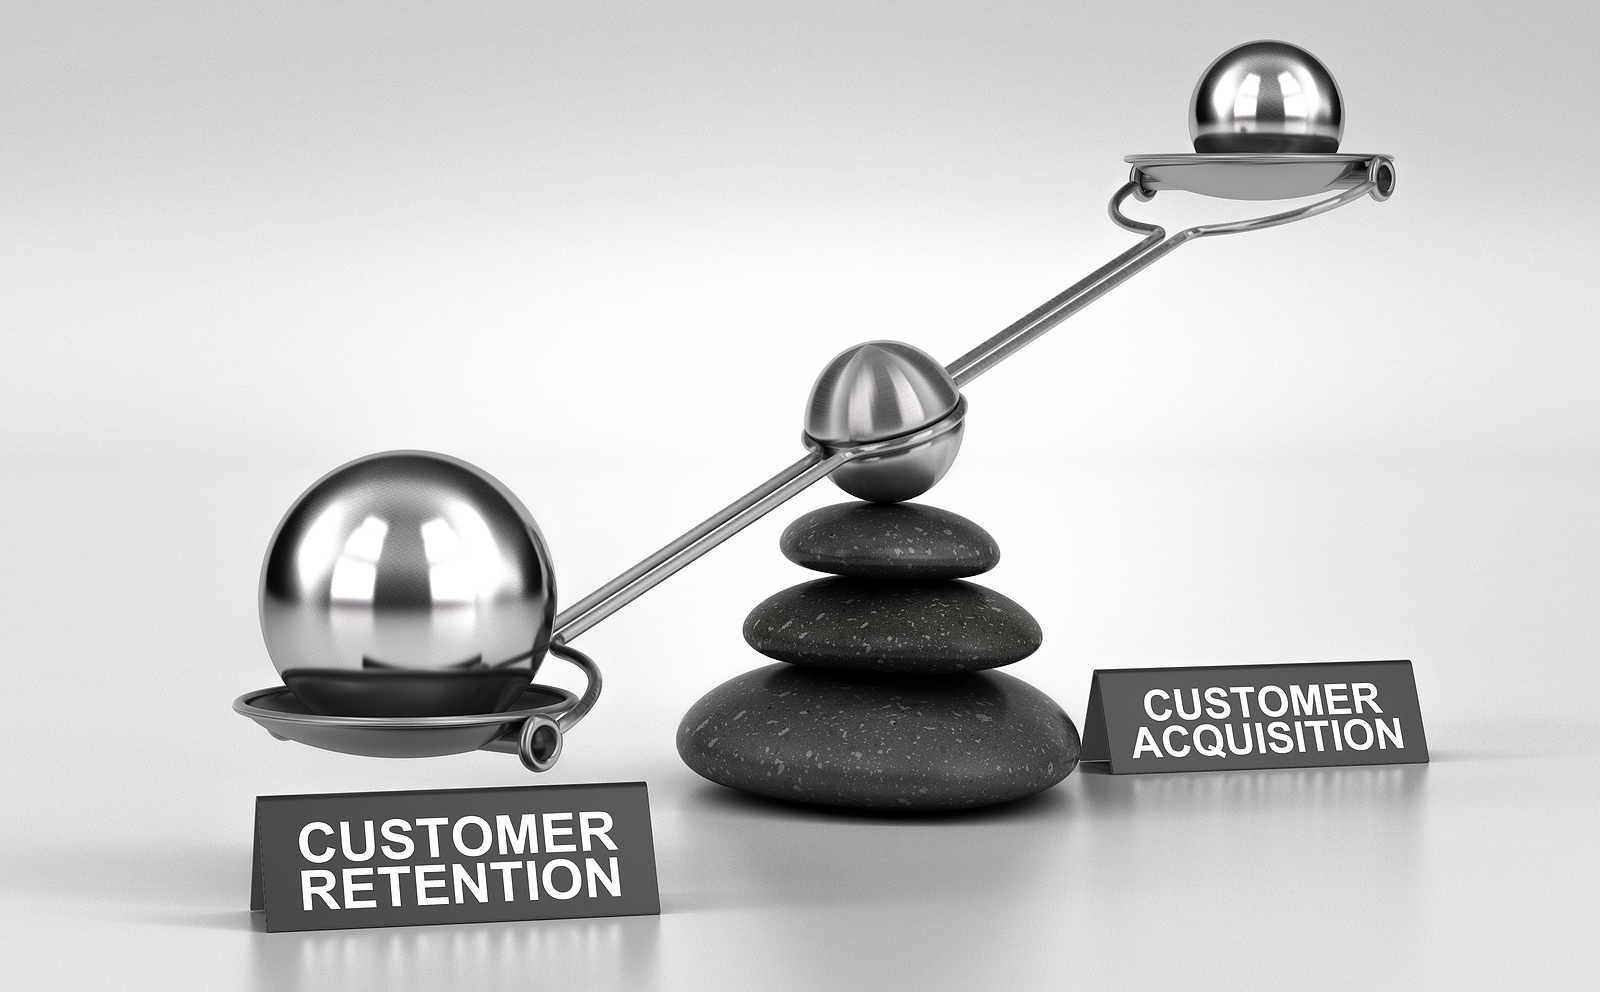 Increase Customer Retention & Revenue in Challenging Times